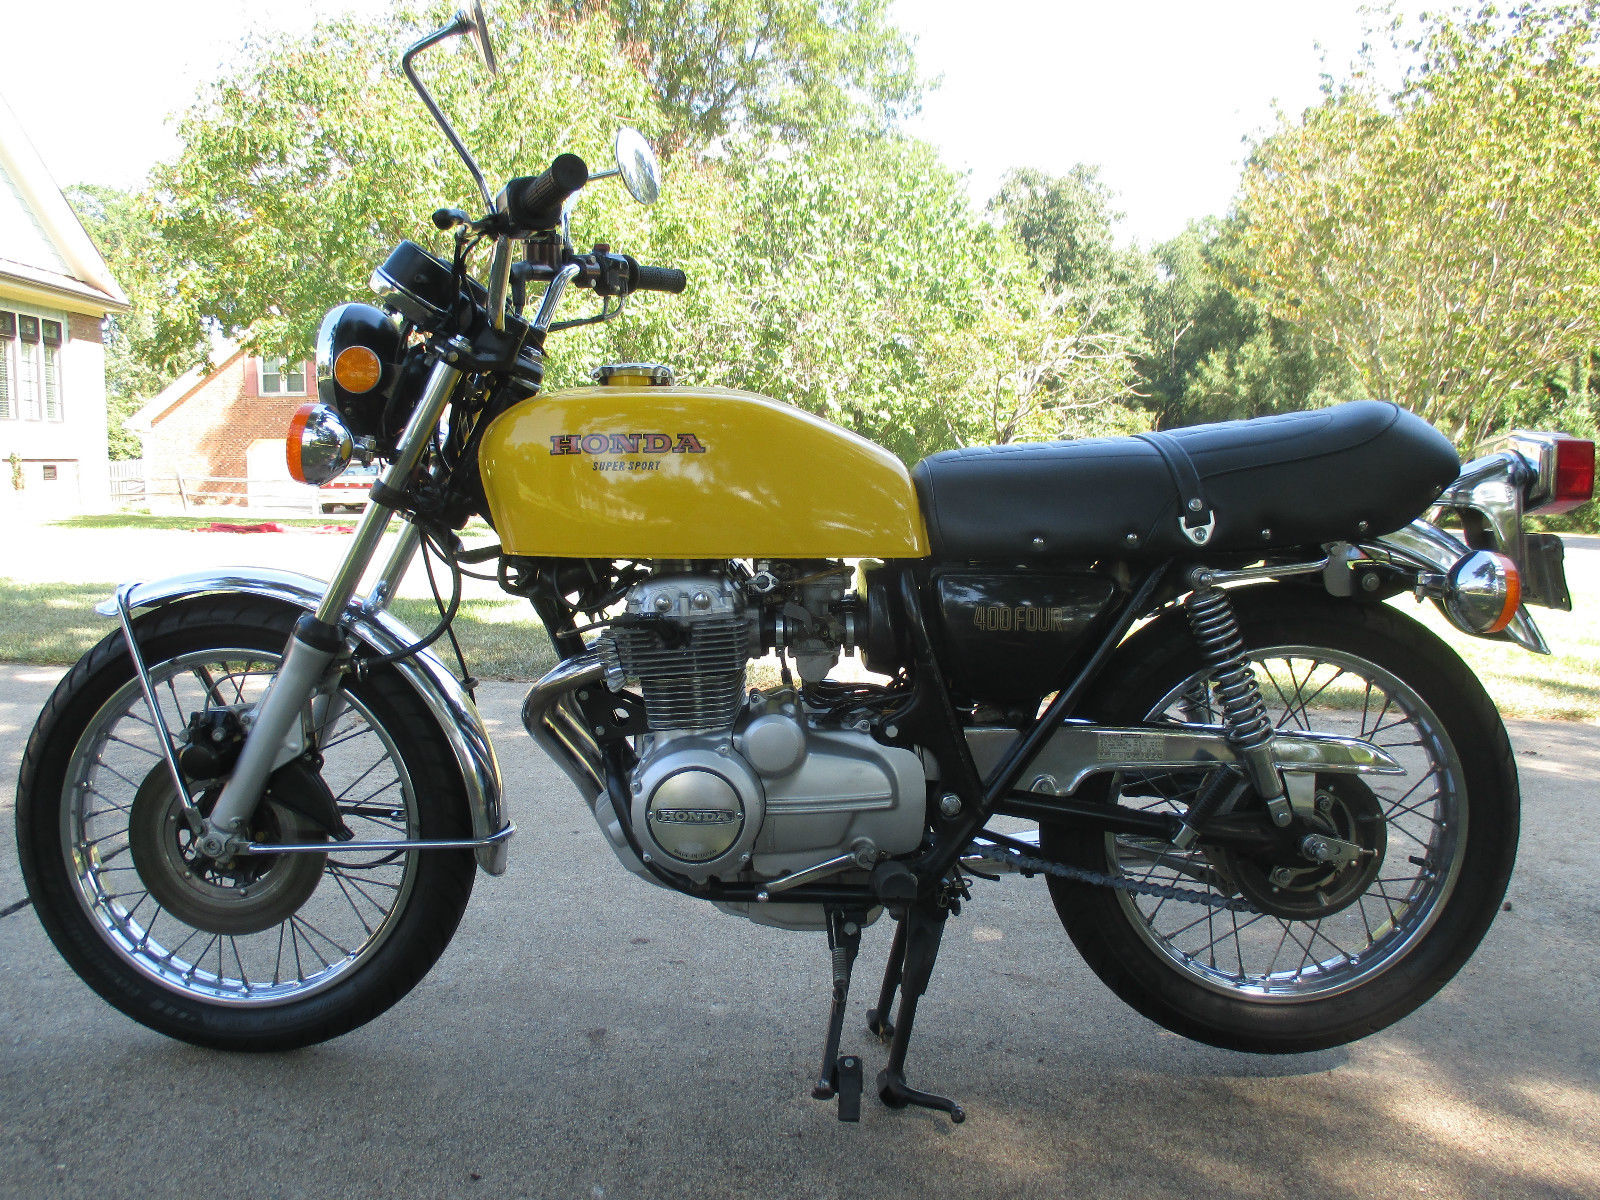 restored honda cb400 four 1976 photographs at classic. Black Bedroom Furniture Sets. Home Design Ideas